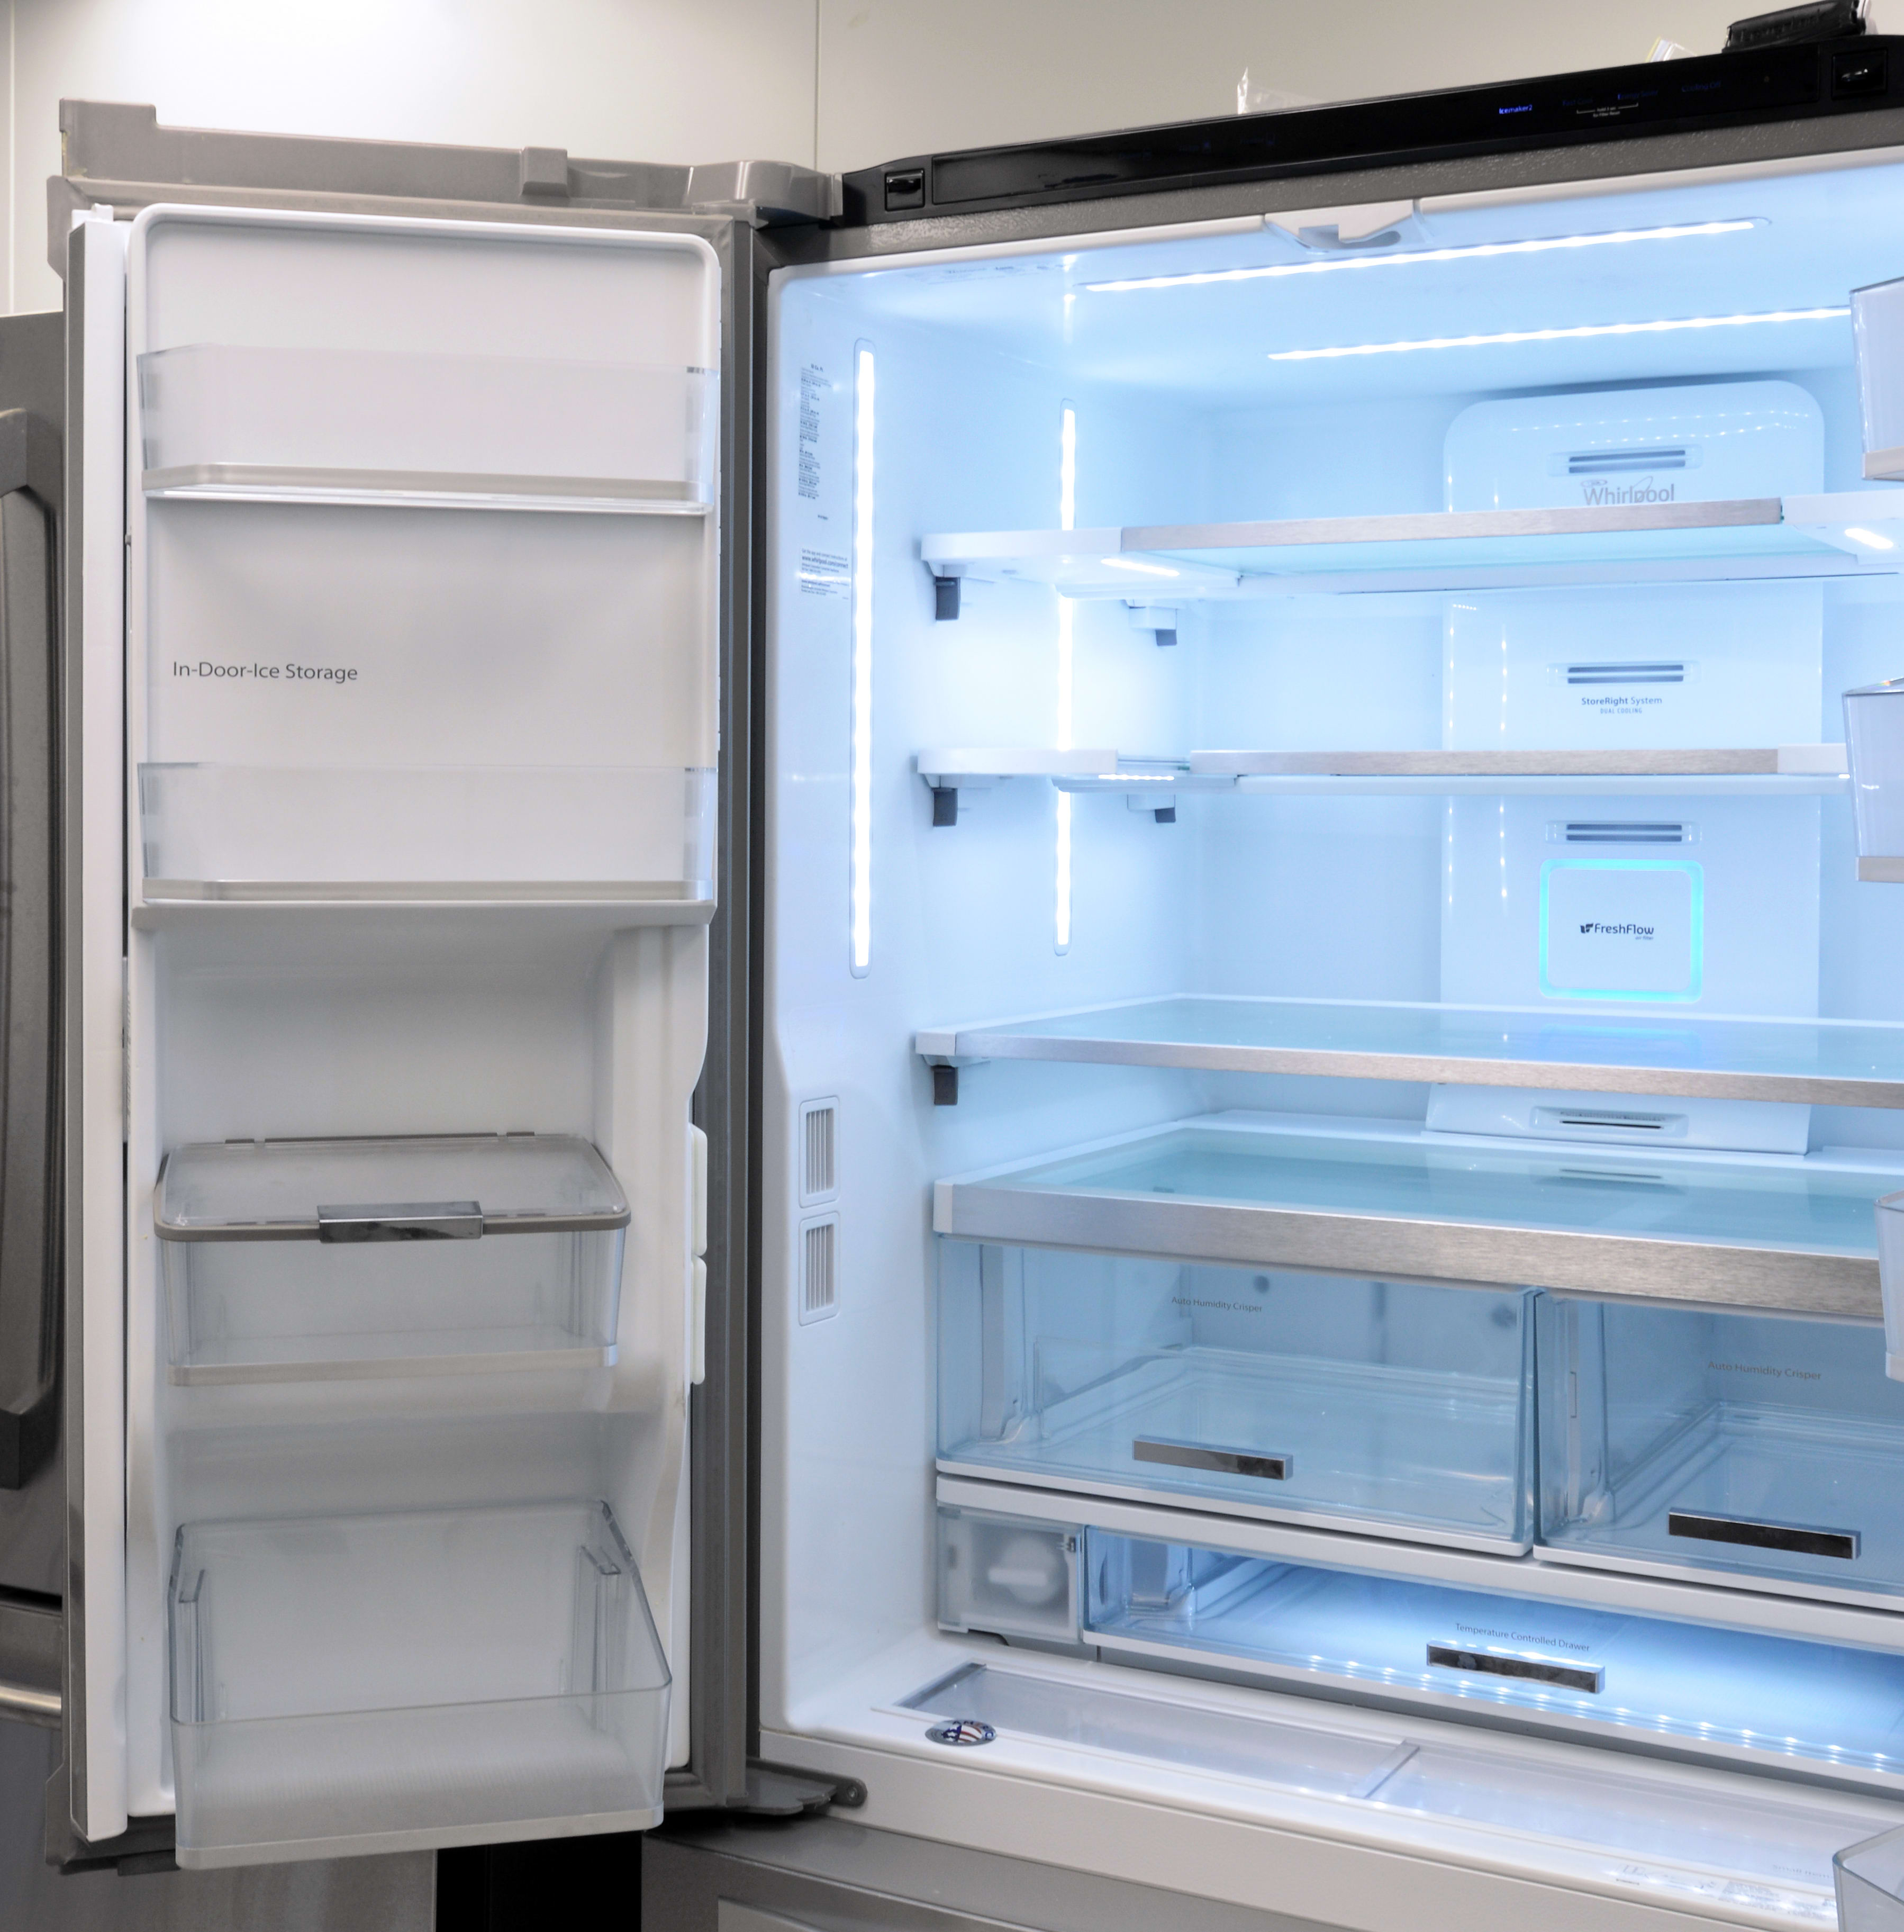 Whirlpool wrf995fifz refrigerator review reviewed refrigerators the slim ice maker is found on the left door which features additional shelves rubansaba